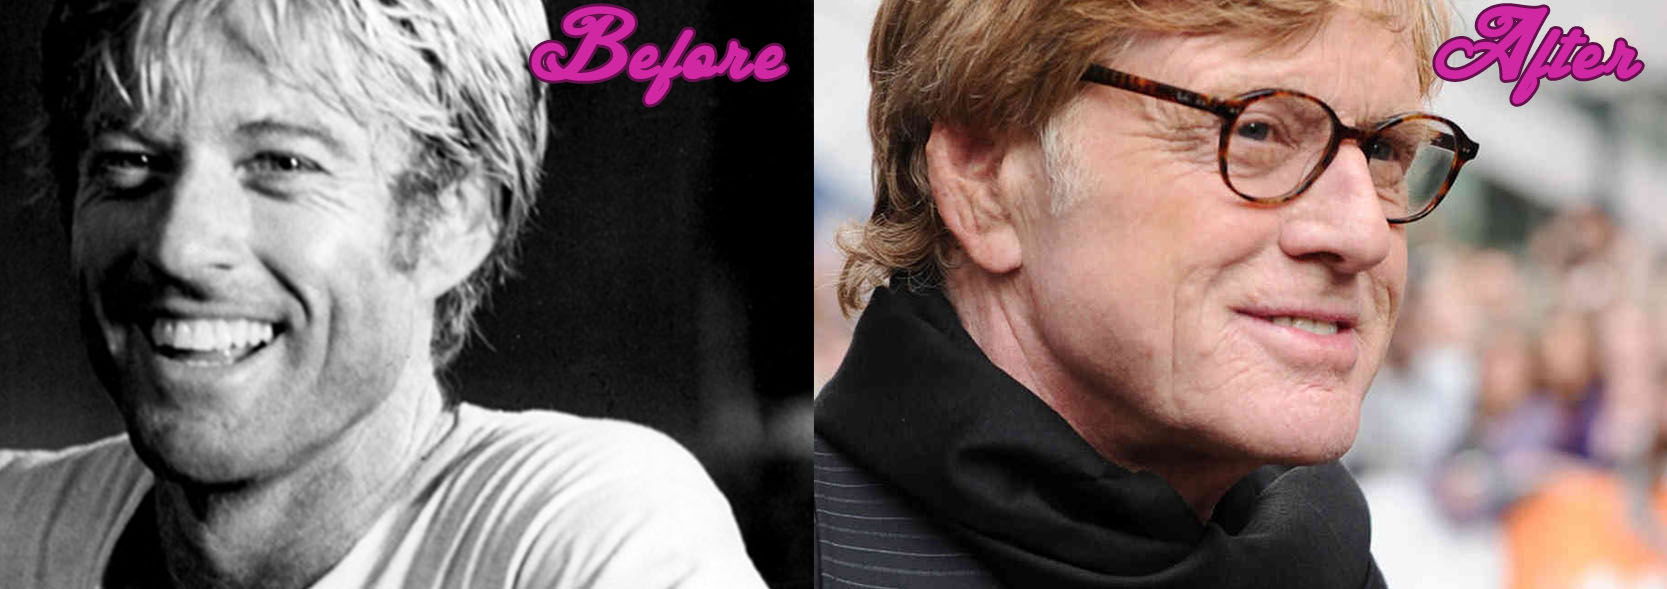 Robert Redford is 77 and not so Many Wrinkles, Natural or Not?